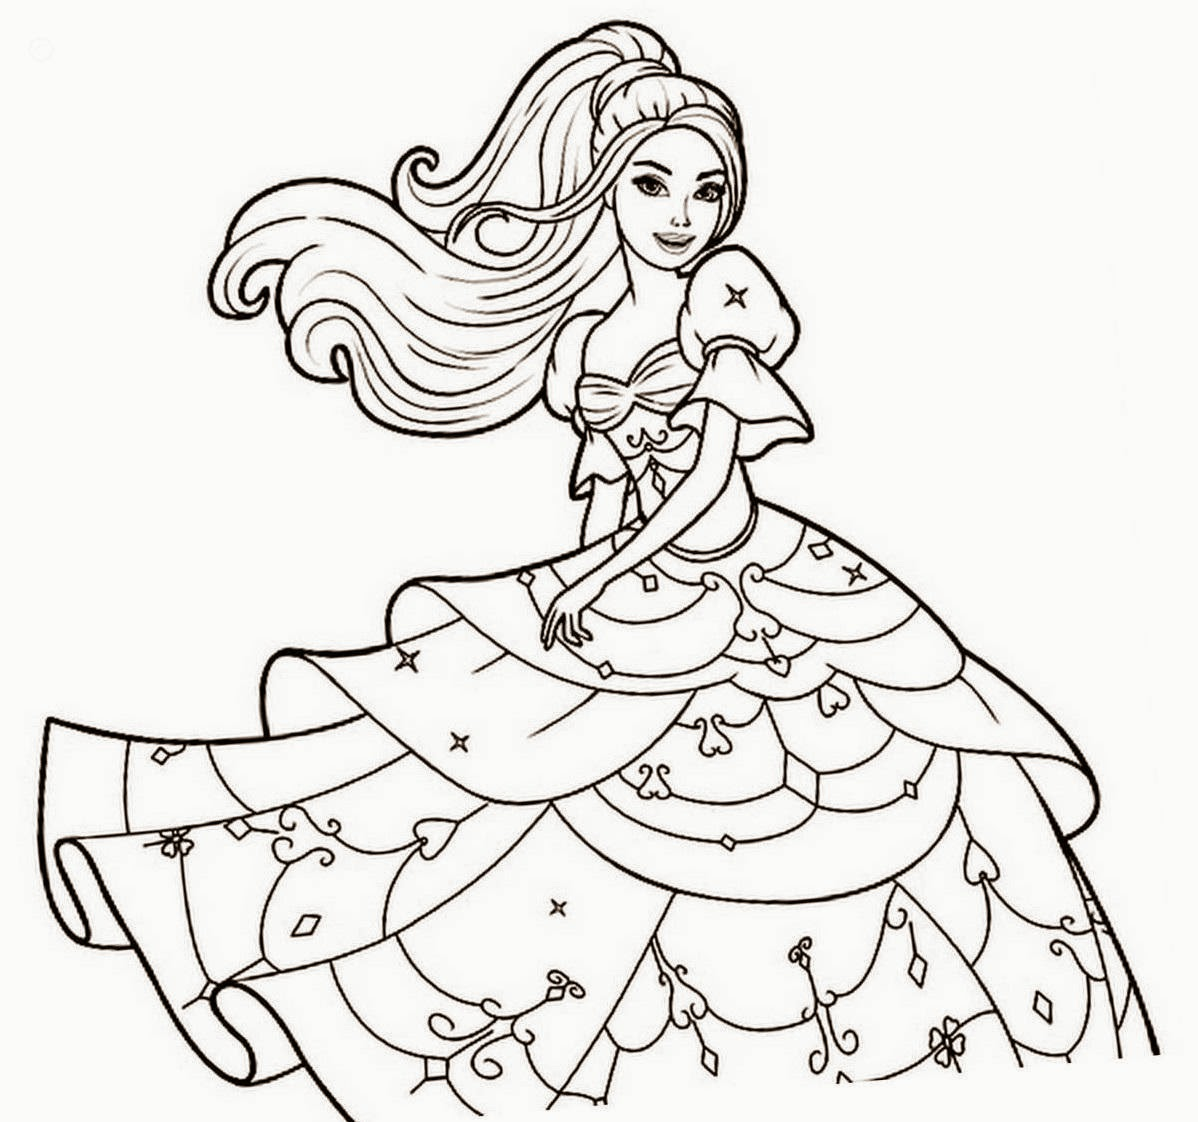 barbie-princess-charm-school-coloring-pages-electic-about-barbie-coloring-page